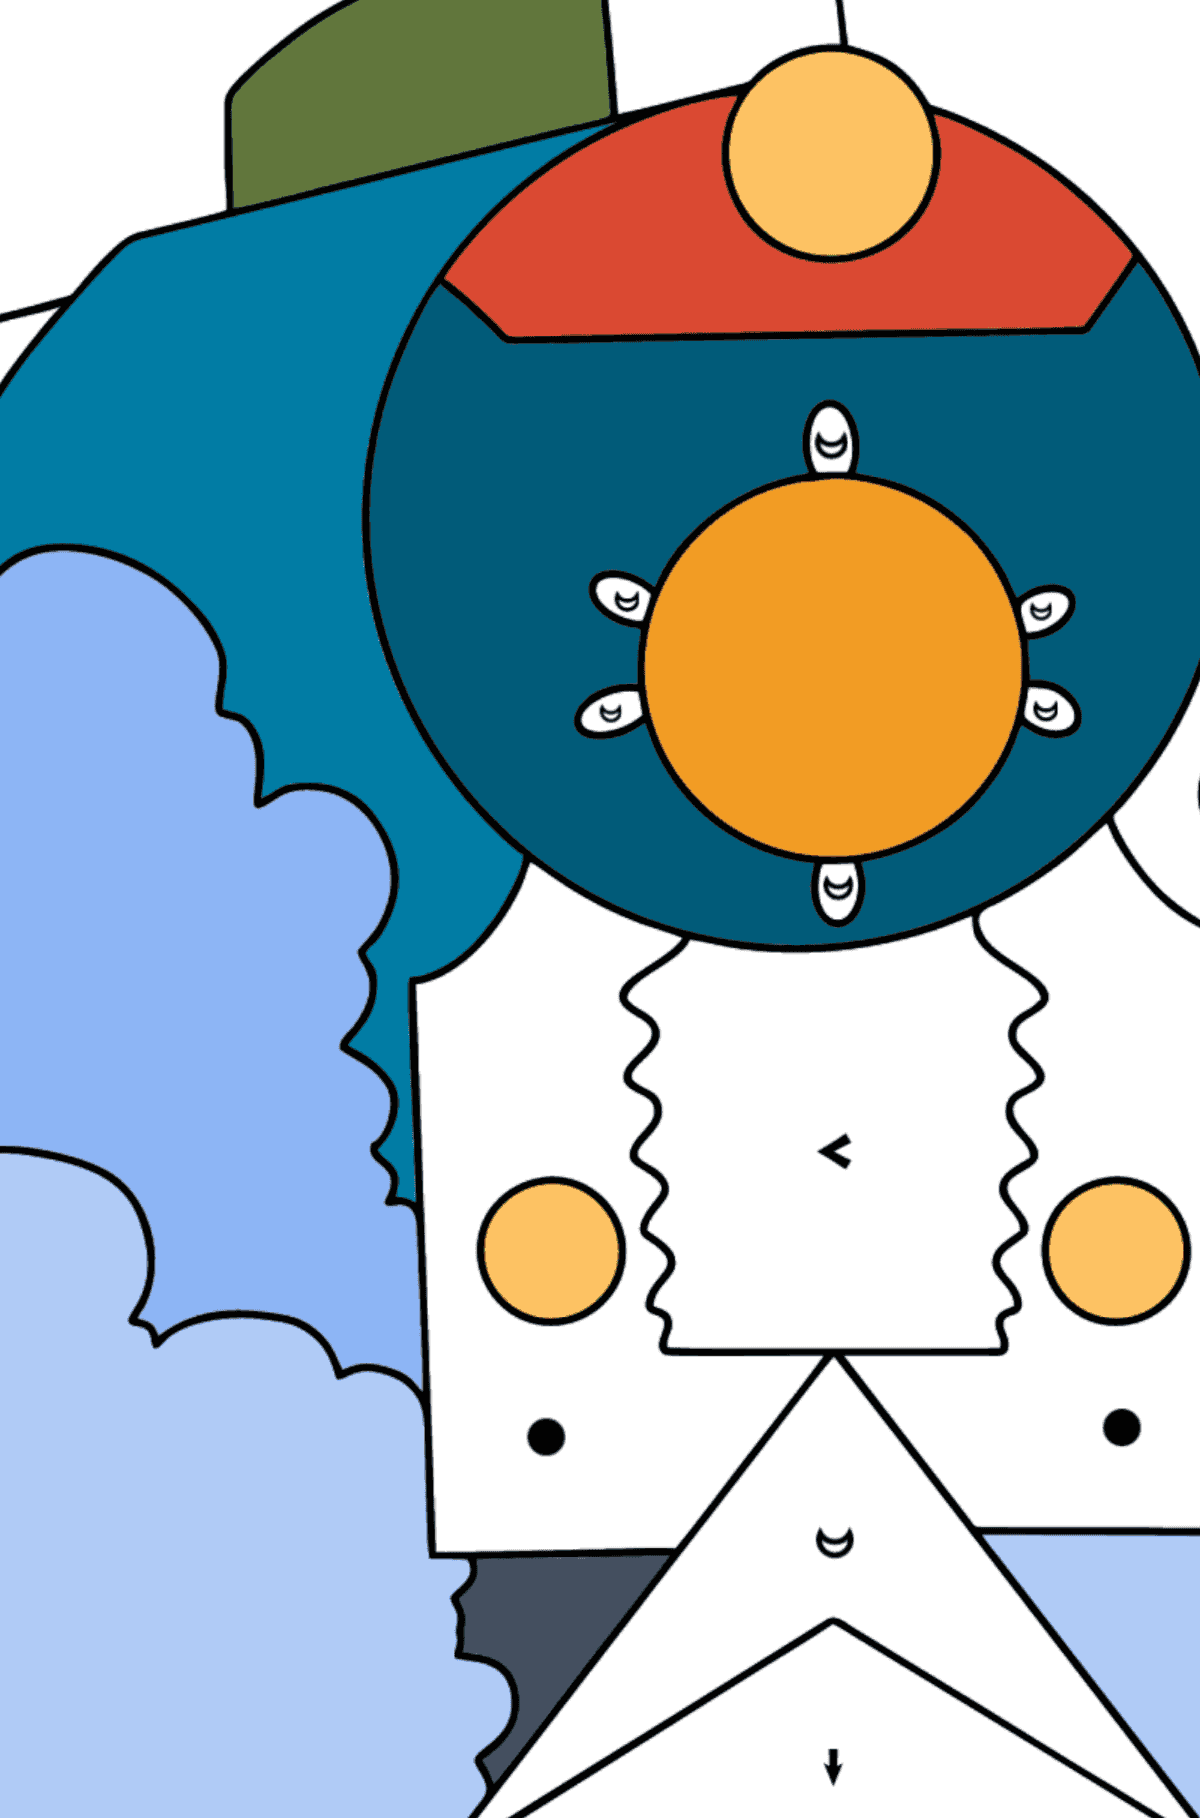 Coloring Page - A Locomotive with Coaches - Coloring by Symbols for Kids